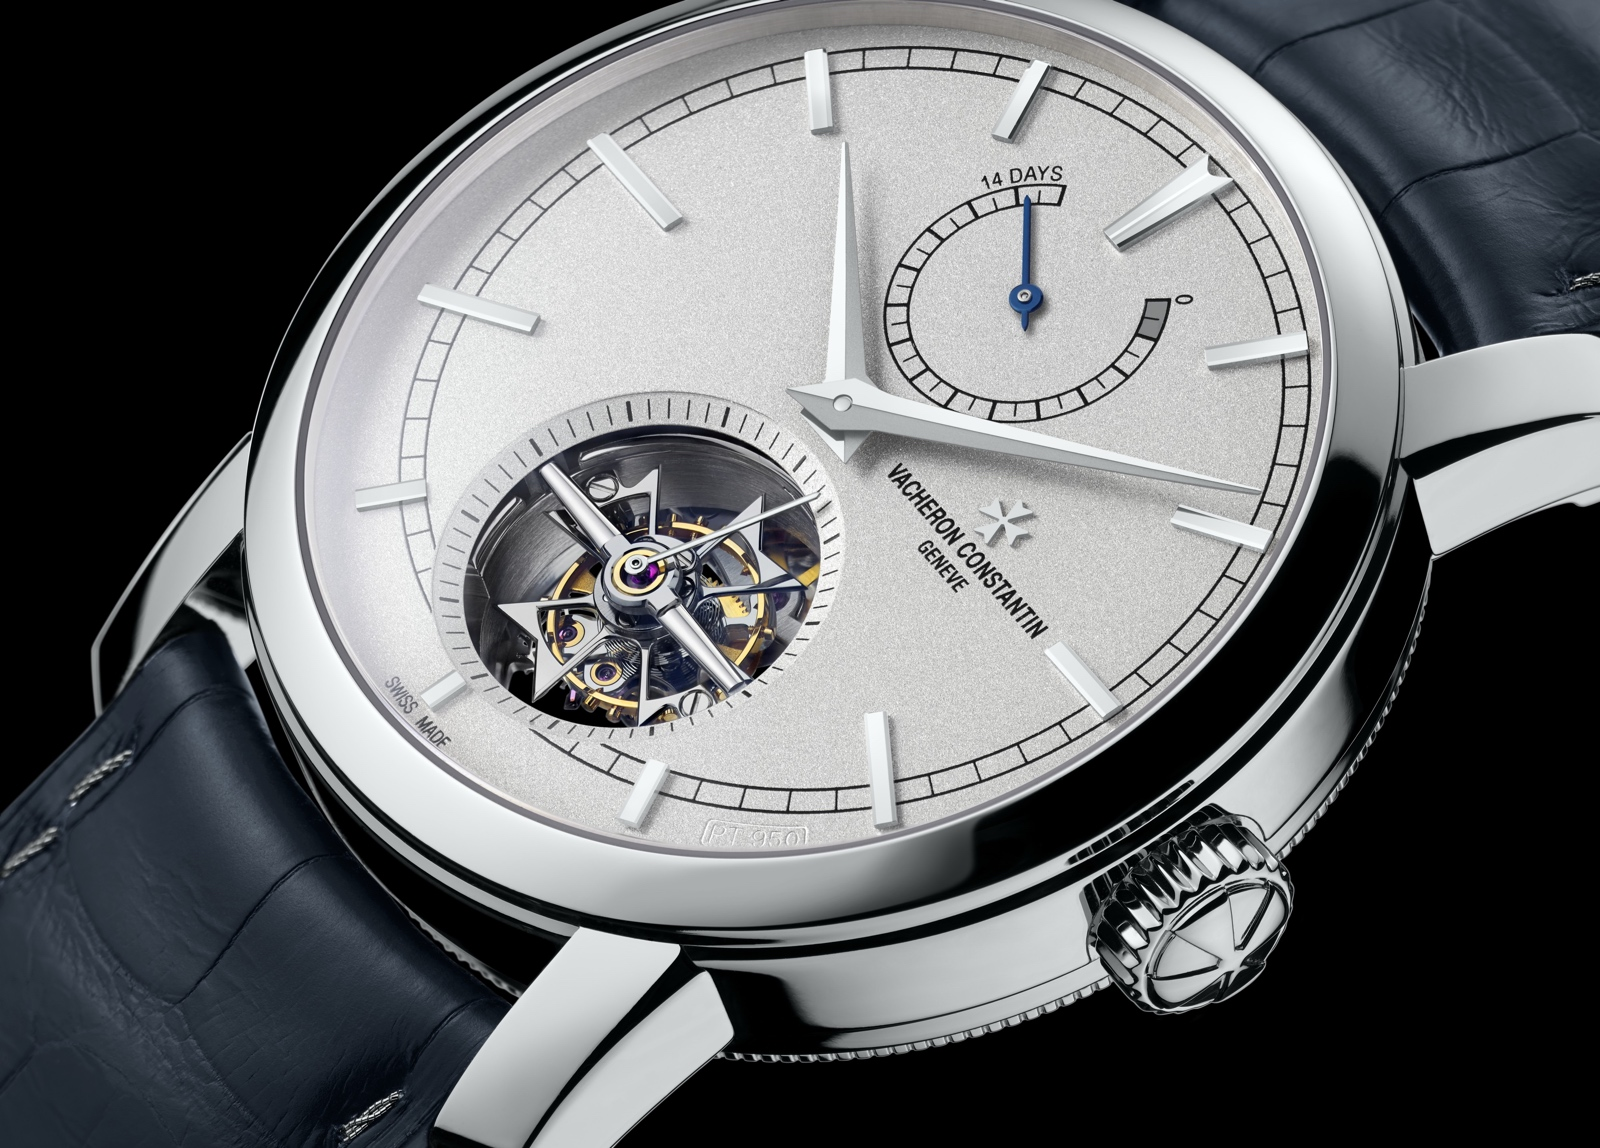 Vacheron Constantin Traditionnelle tourbillon 14 jours cover